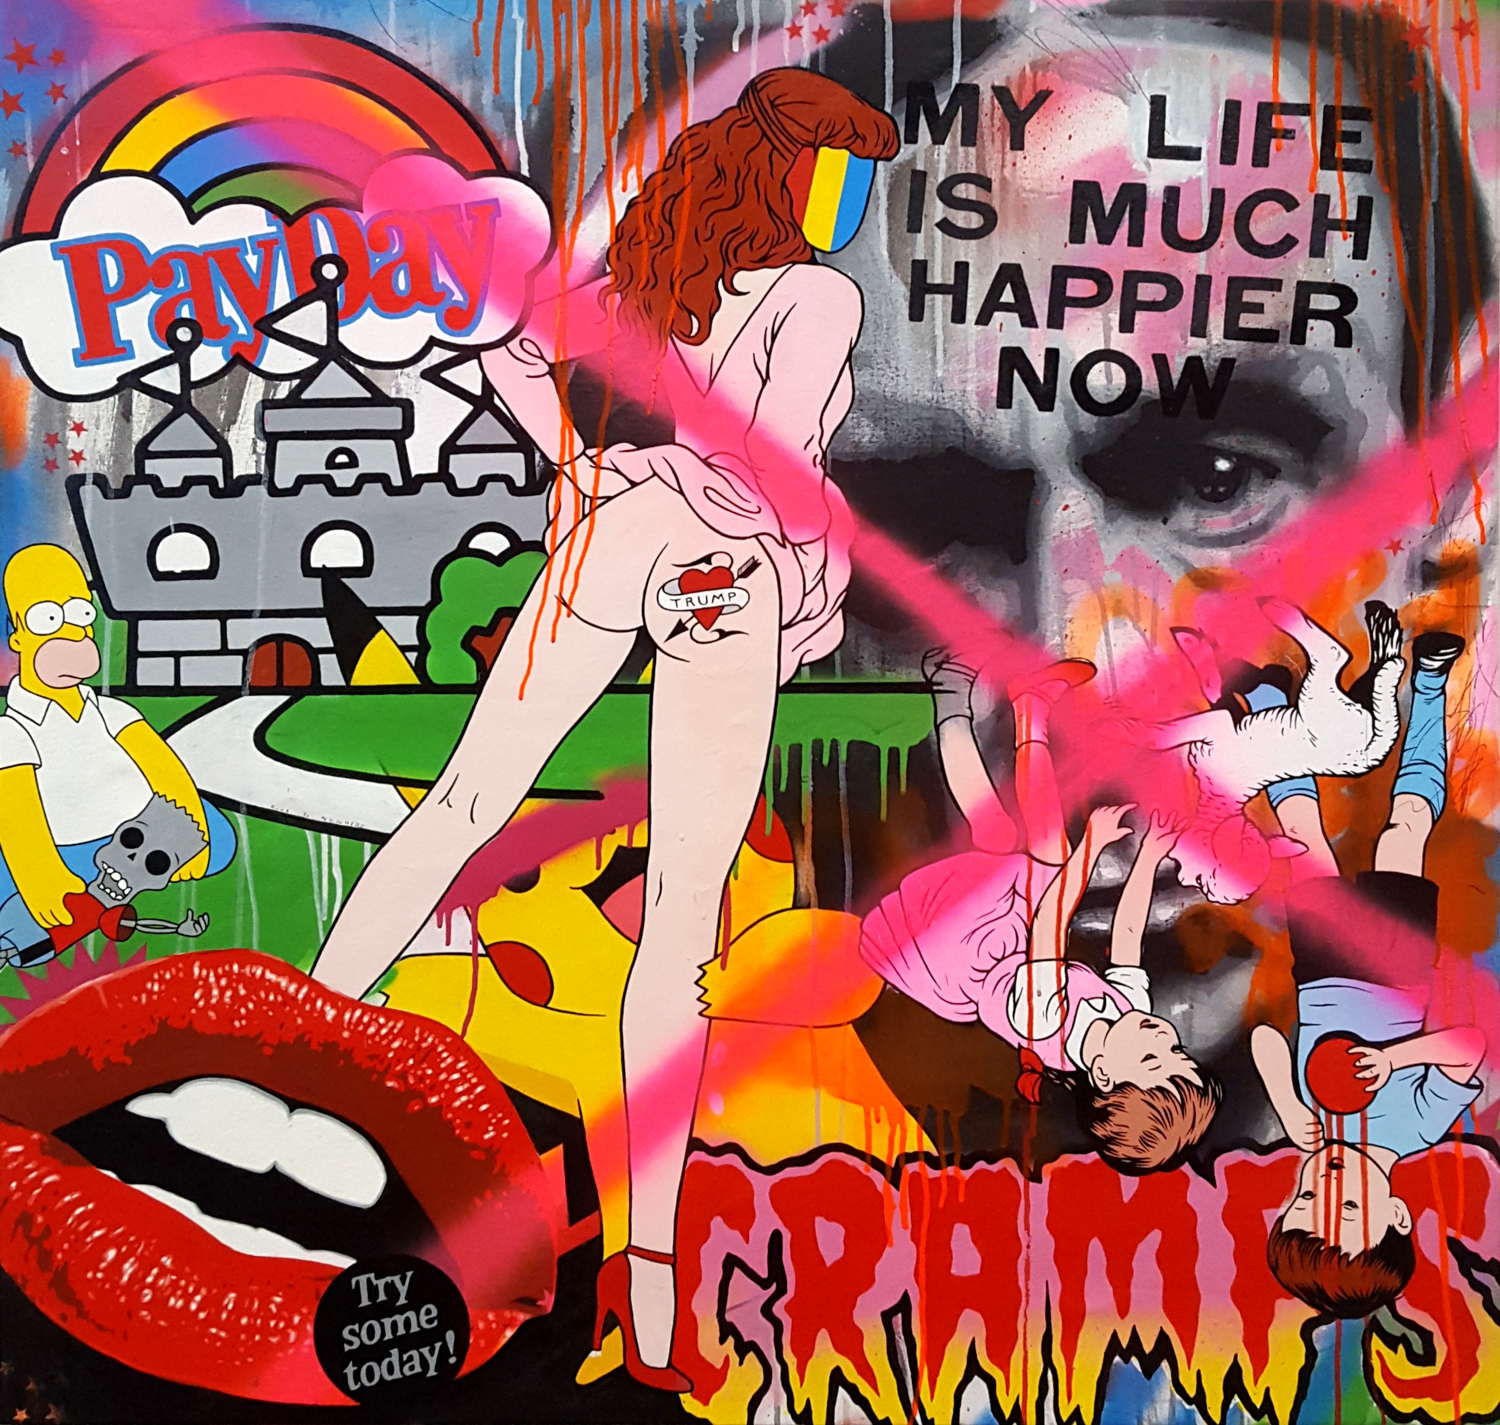 My Life is Much Happier Now - Mixed Media on canvas. 100cm x 100cm. 2017